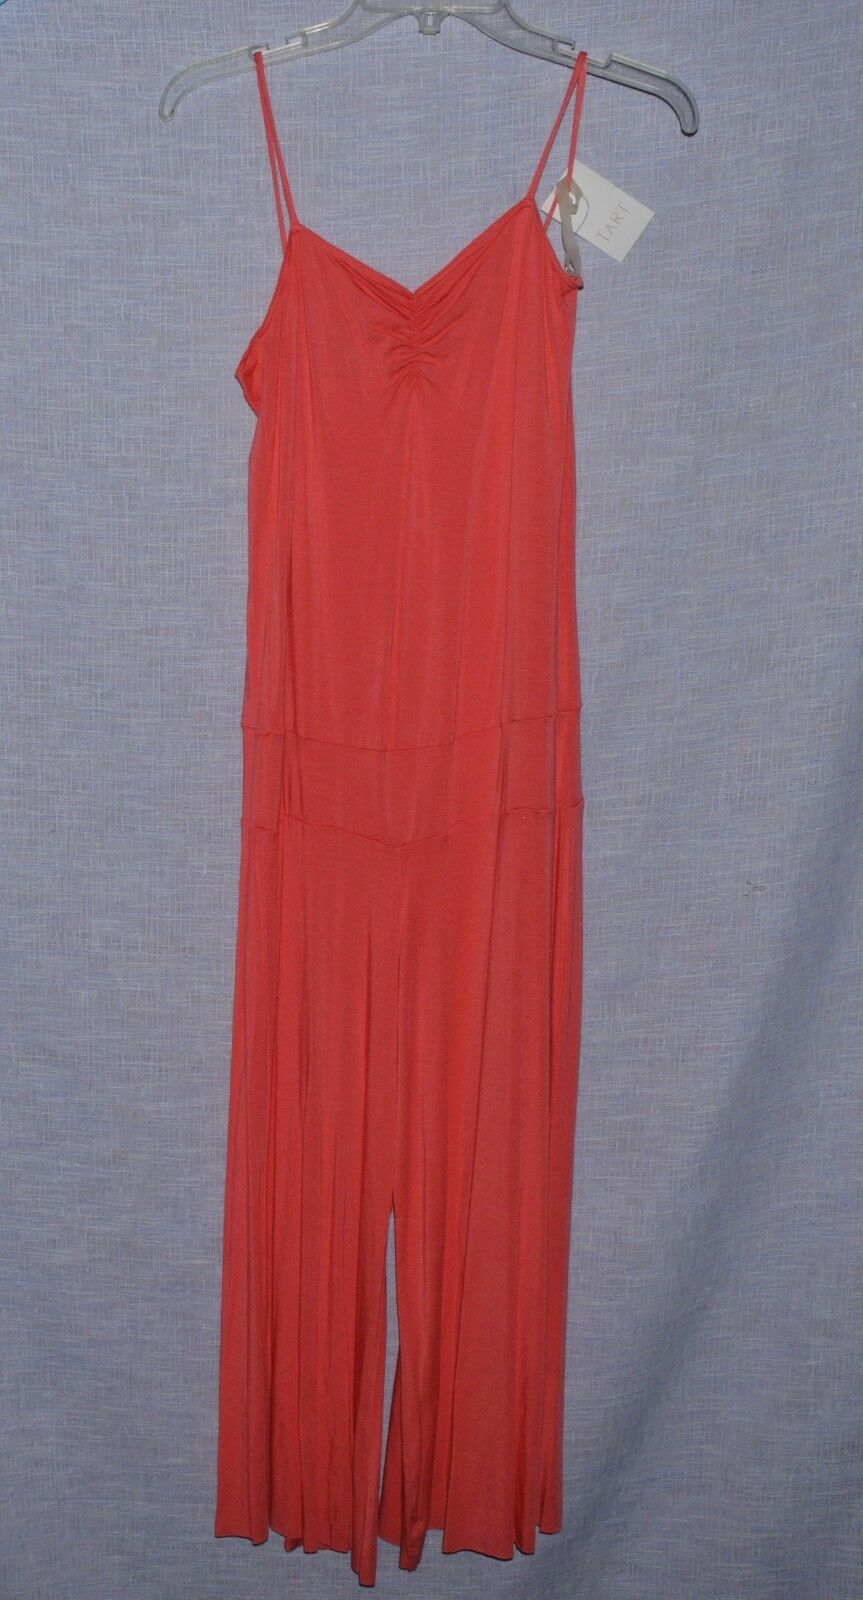 TART COLLECTION NEW NWT SZ M MEDIUM PINK CORAL STRETCHY ROMPER MADE IN USA